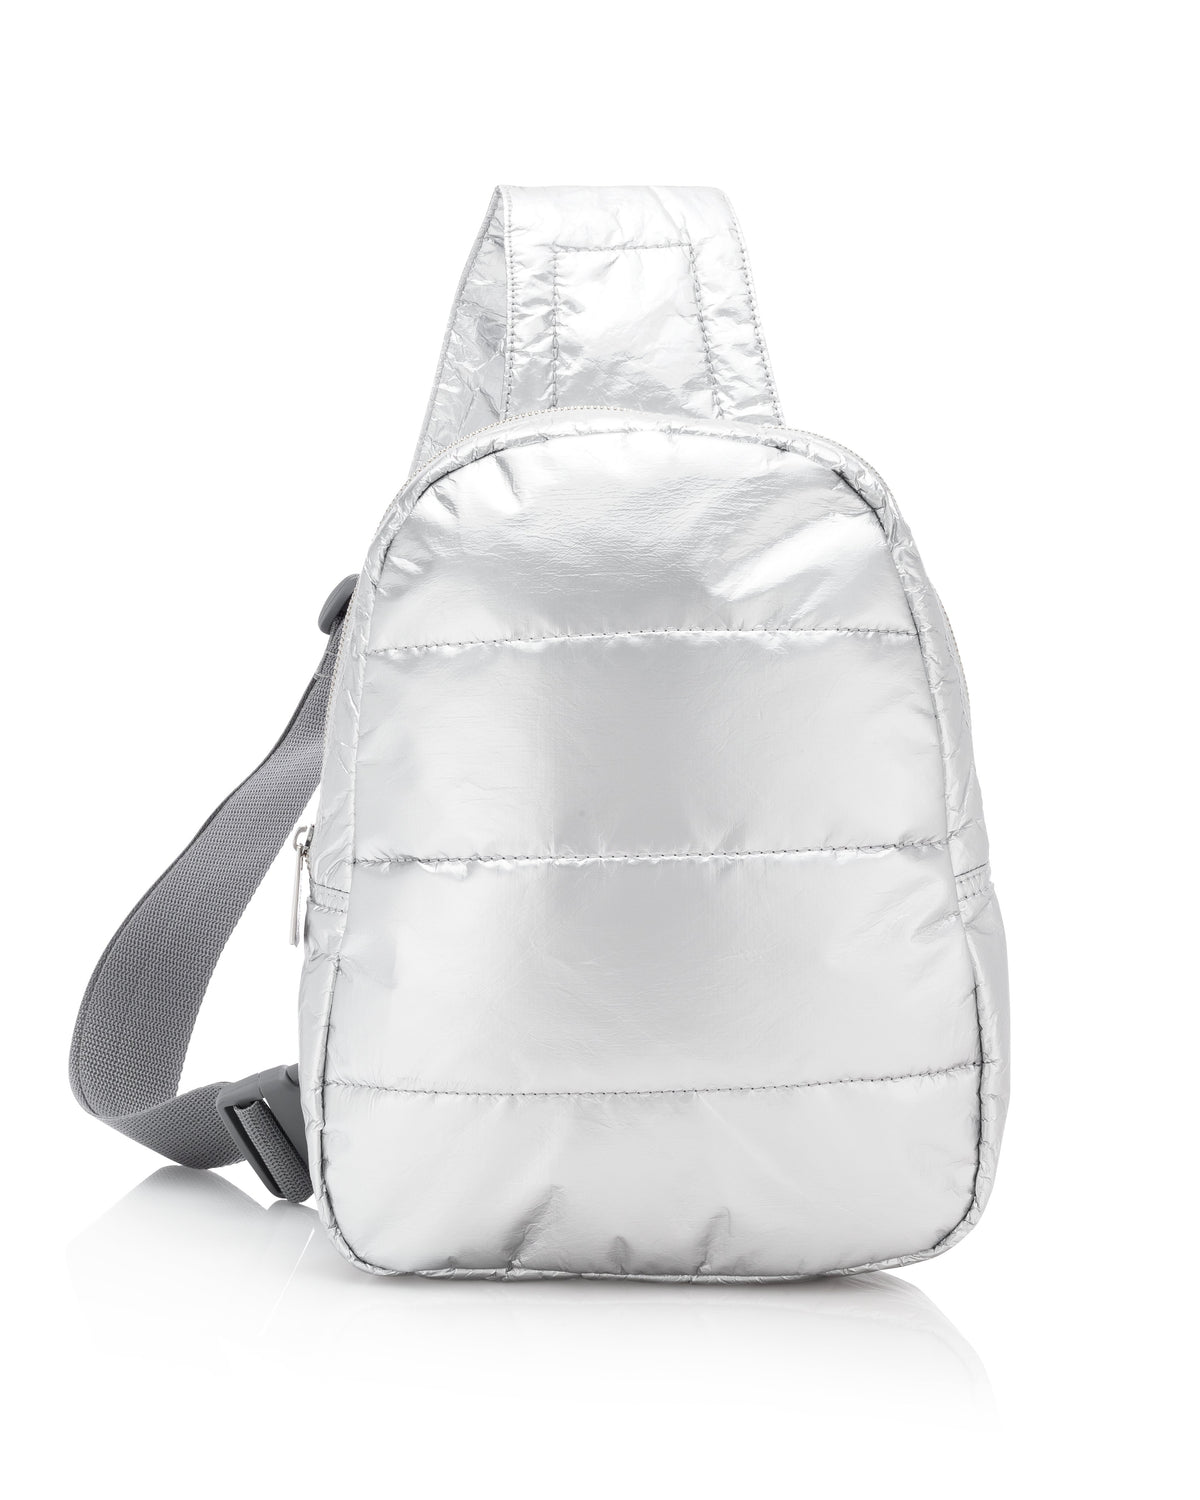 Crossbody Backpack - Metallic Silver